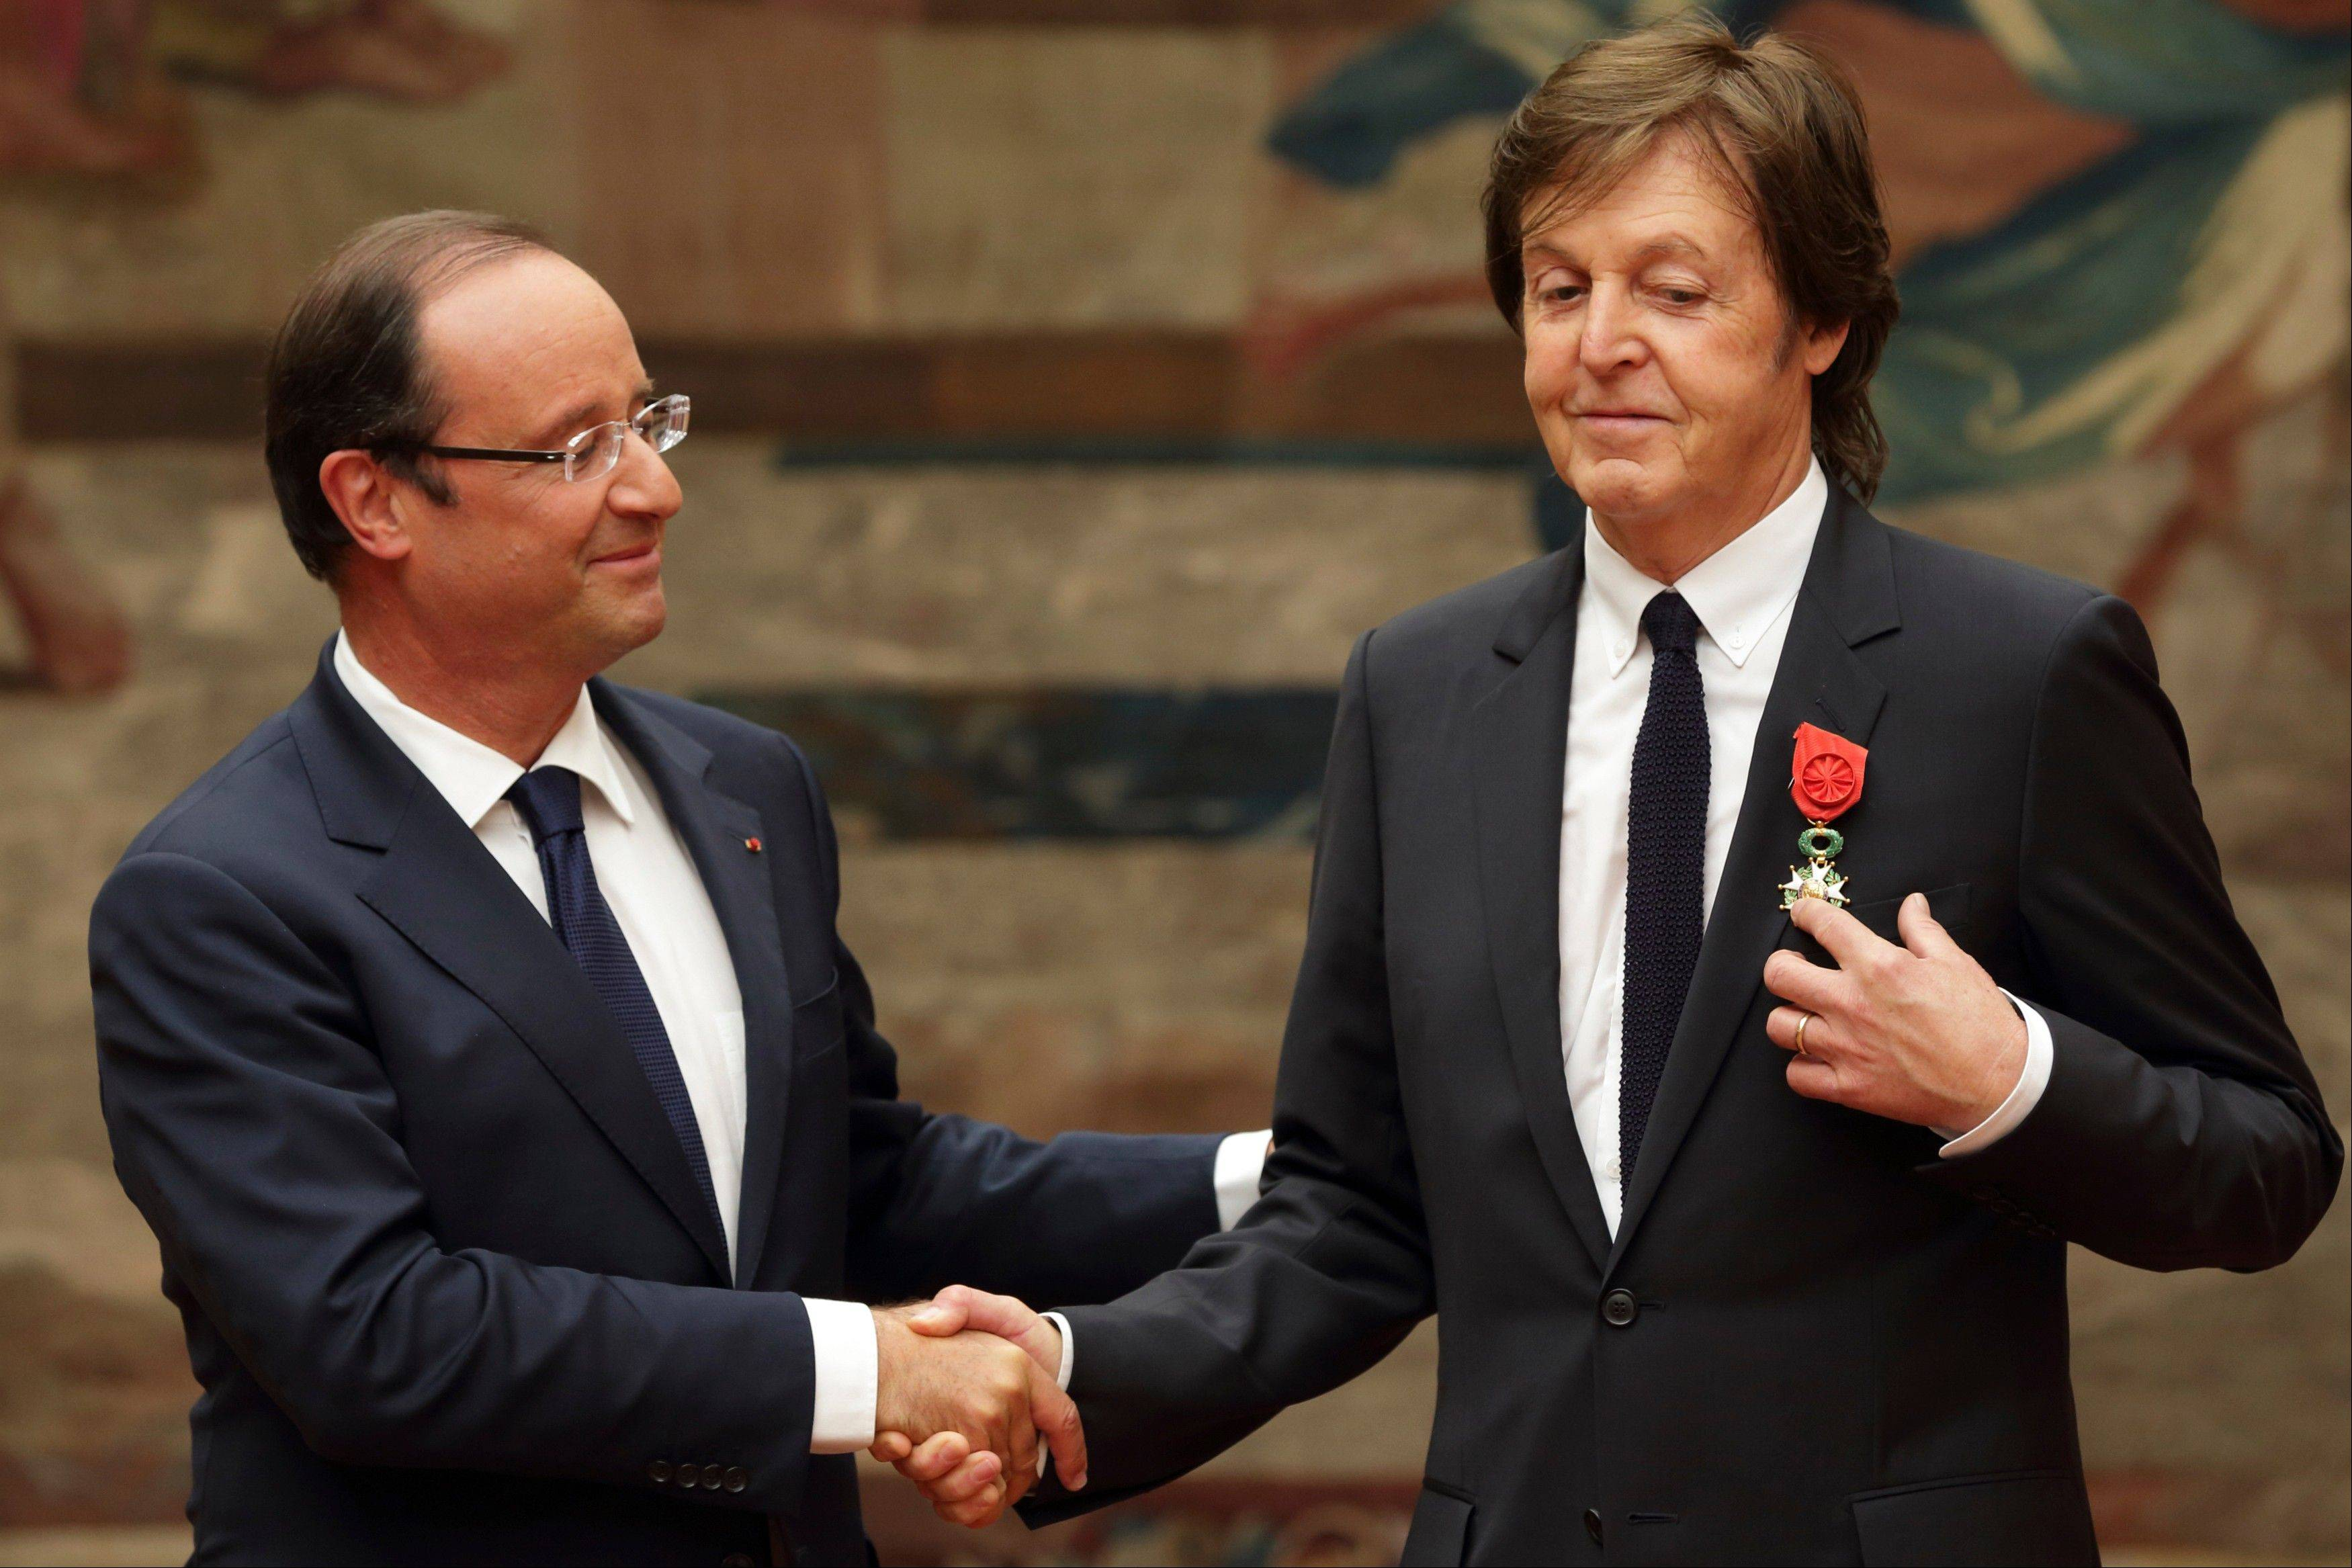 French President Francois Hollande, left, awards British musician Paul McCartney during a decoration ceremony photo session Saturday at the Elysee Palace in Paris.